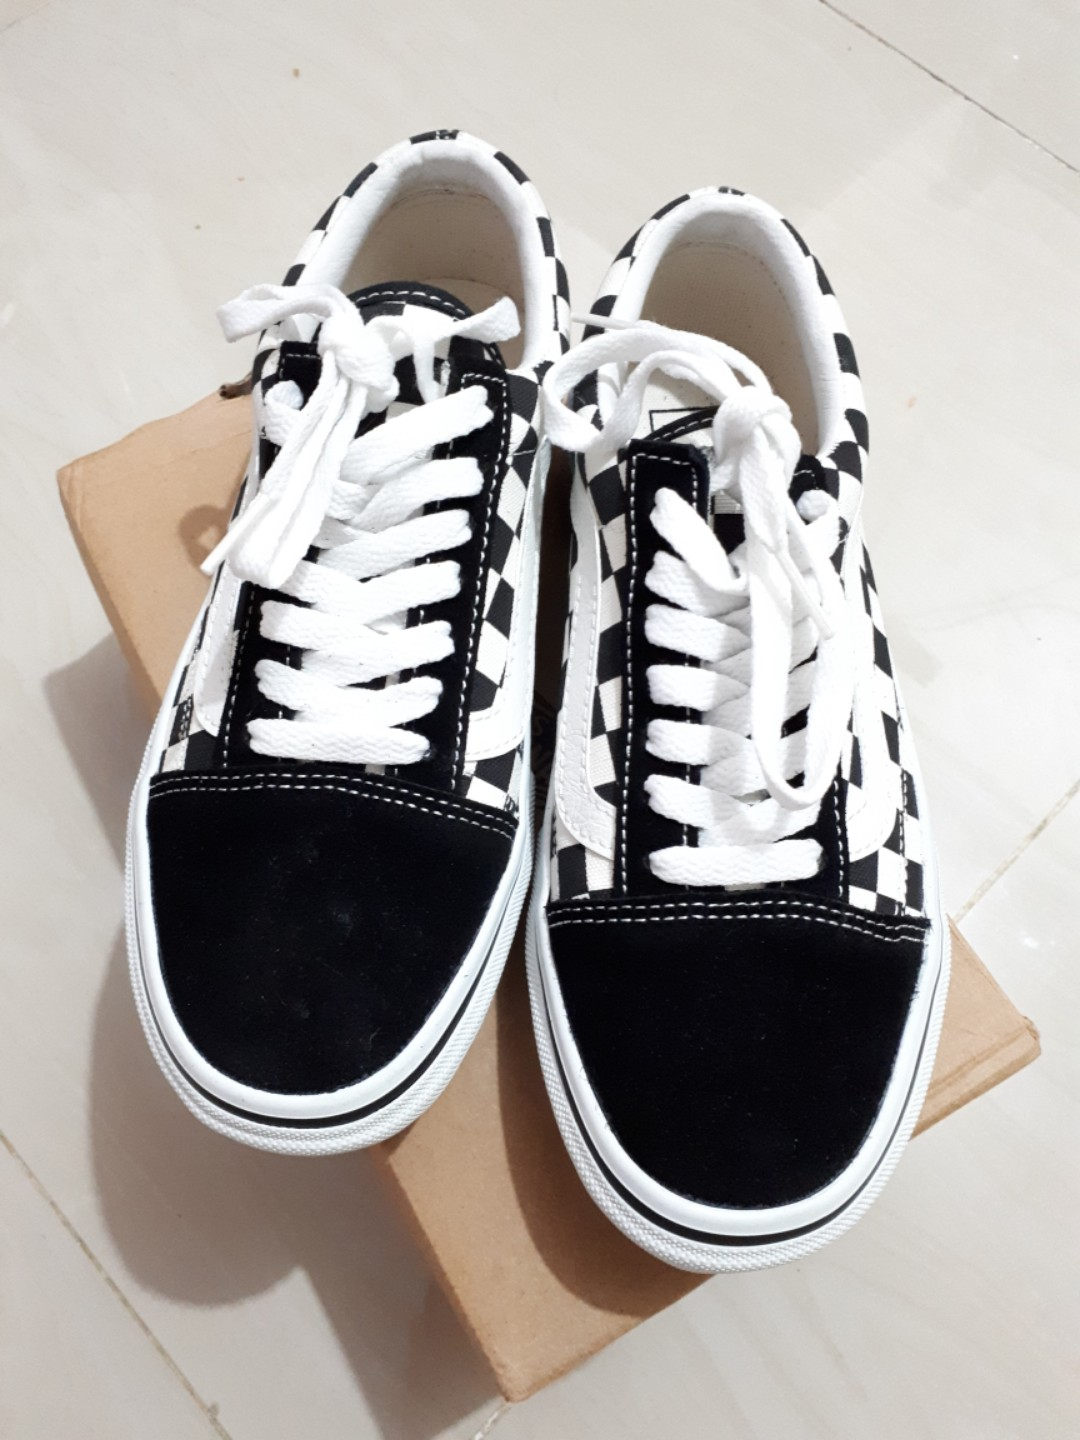 8fdc89c3a9 VANS OLD SKOOL BLACK AND WHITE CHECKERBOARD V36-38